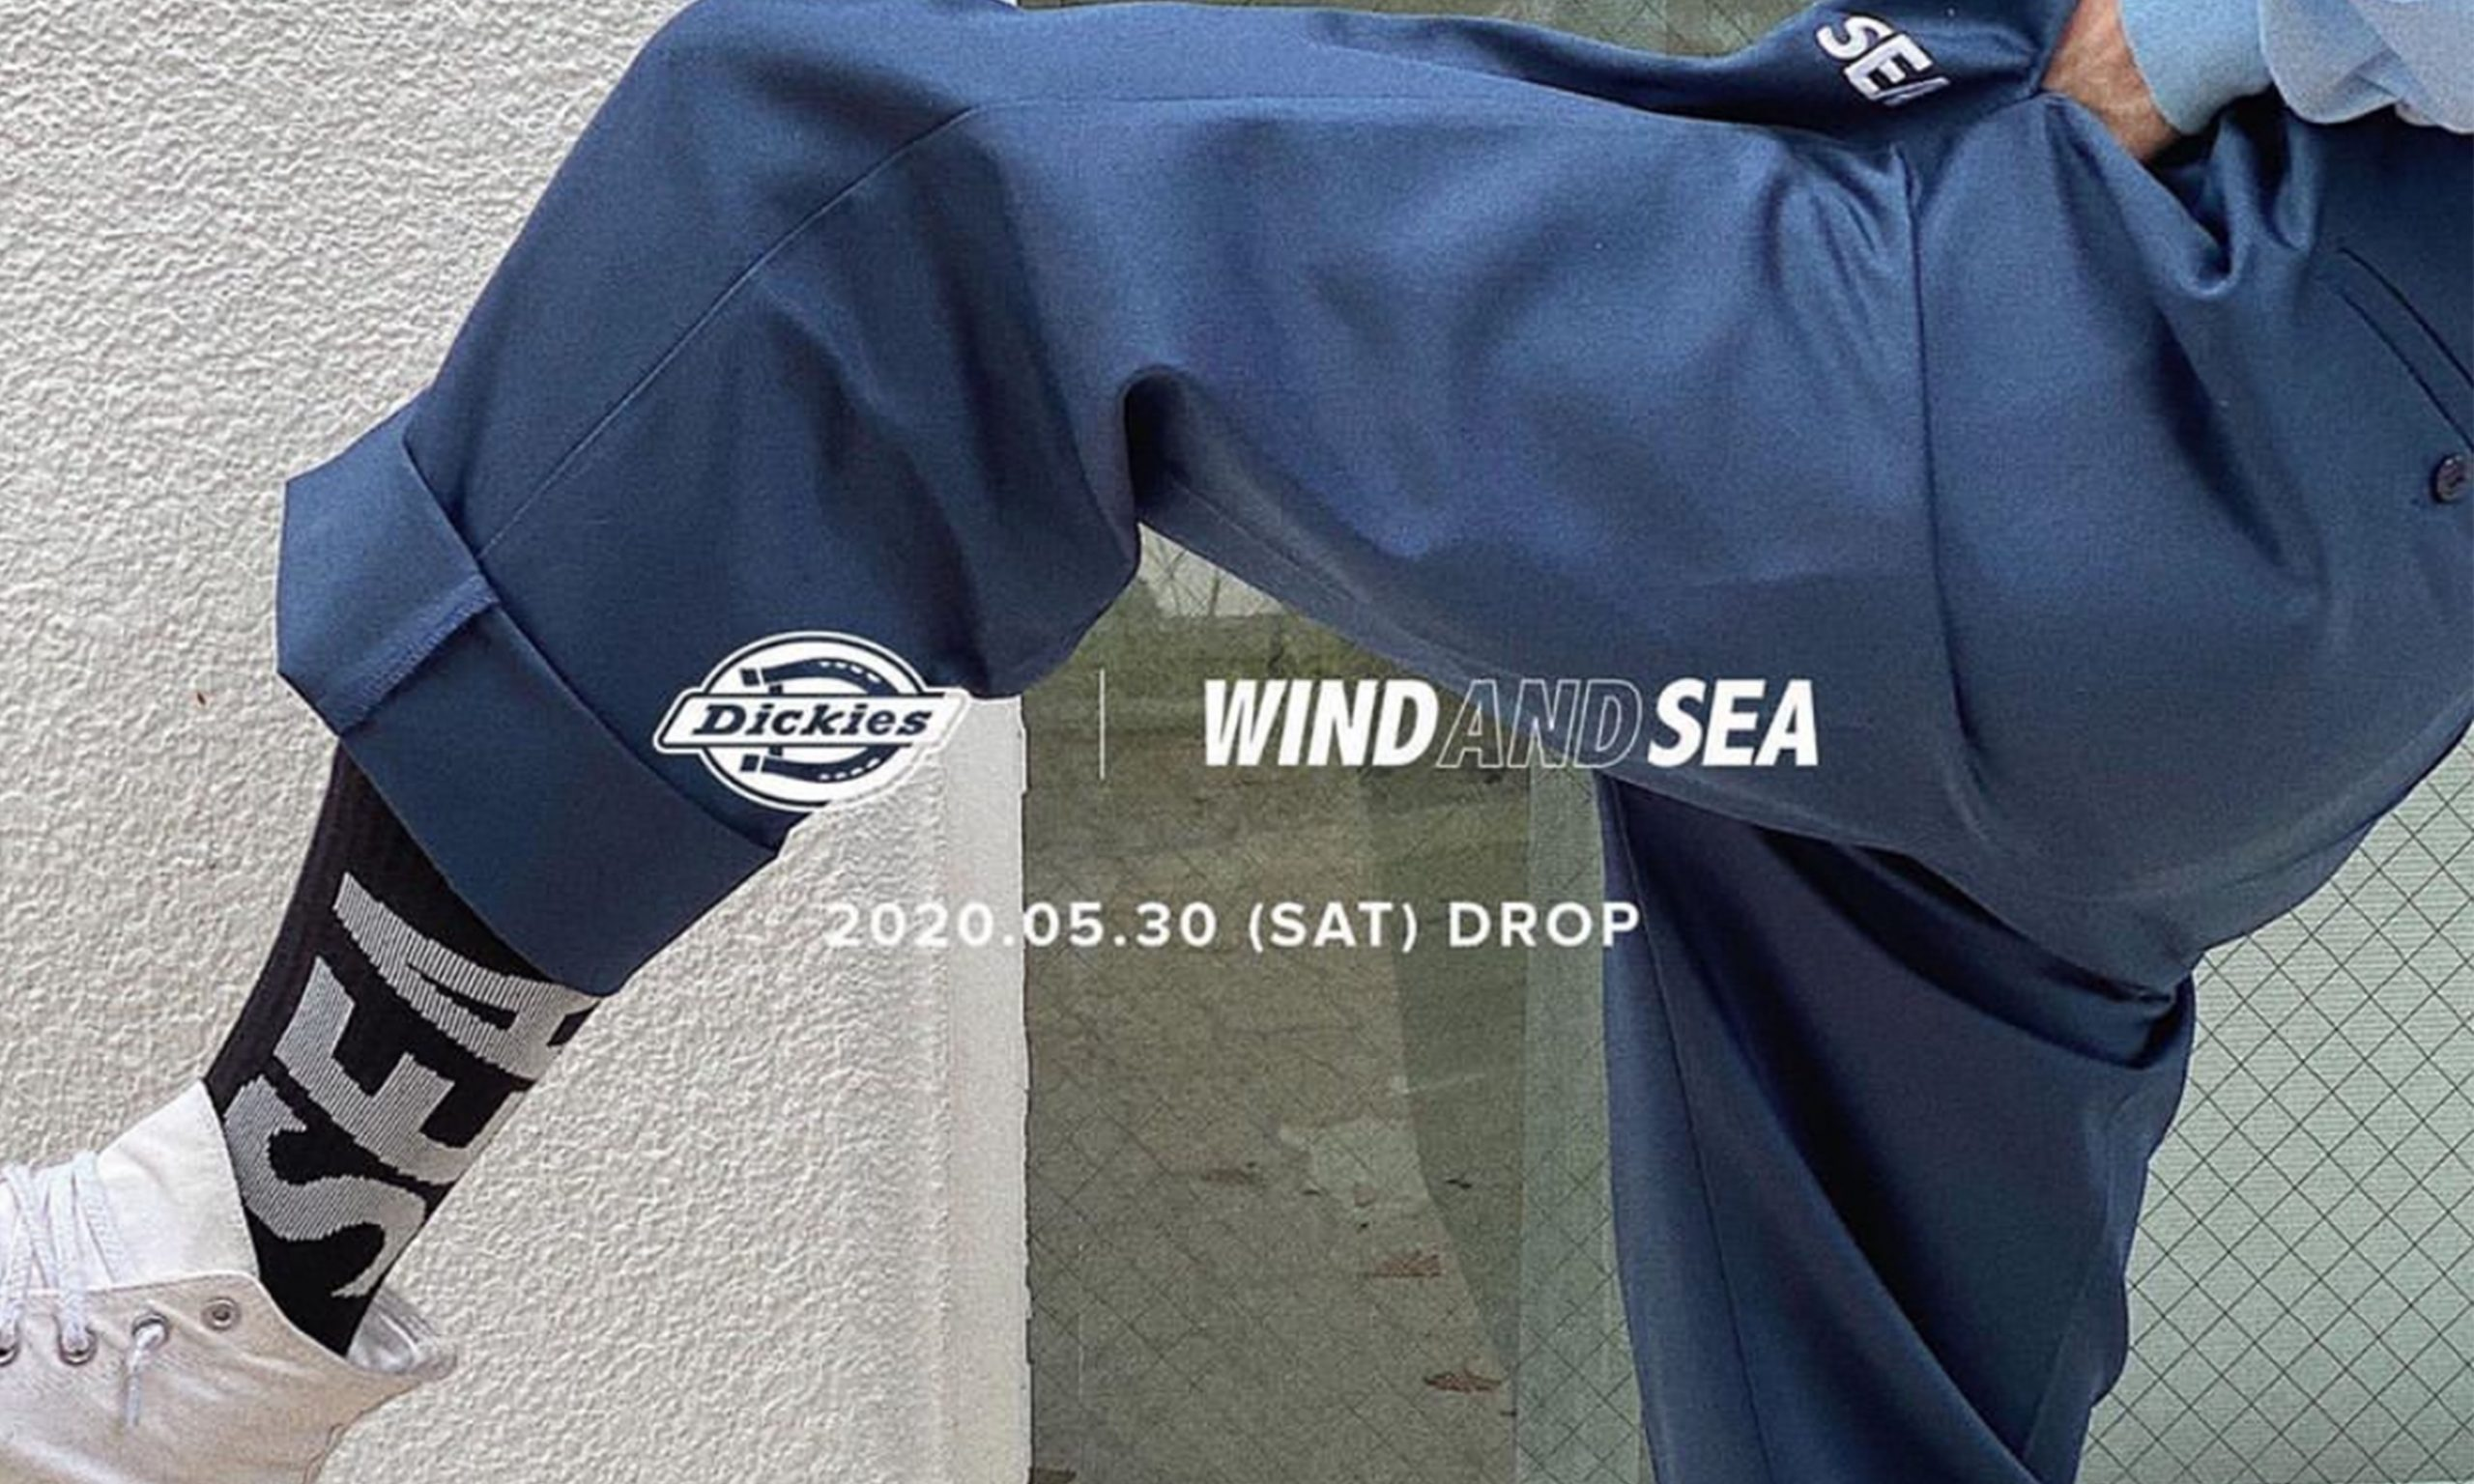 Dickies x WIND AND SEA 合作系列公开